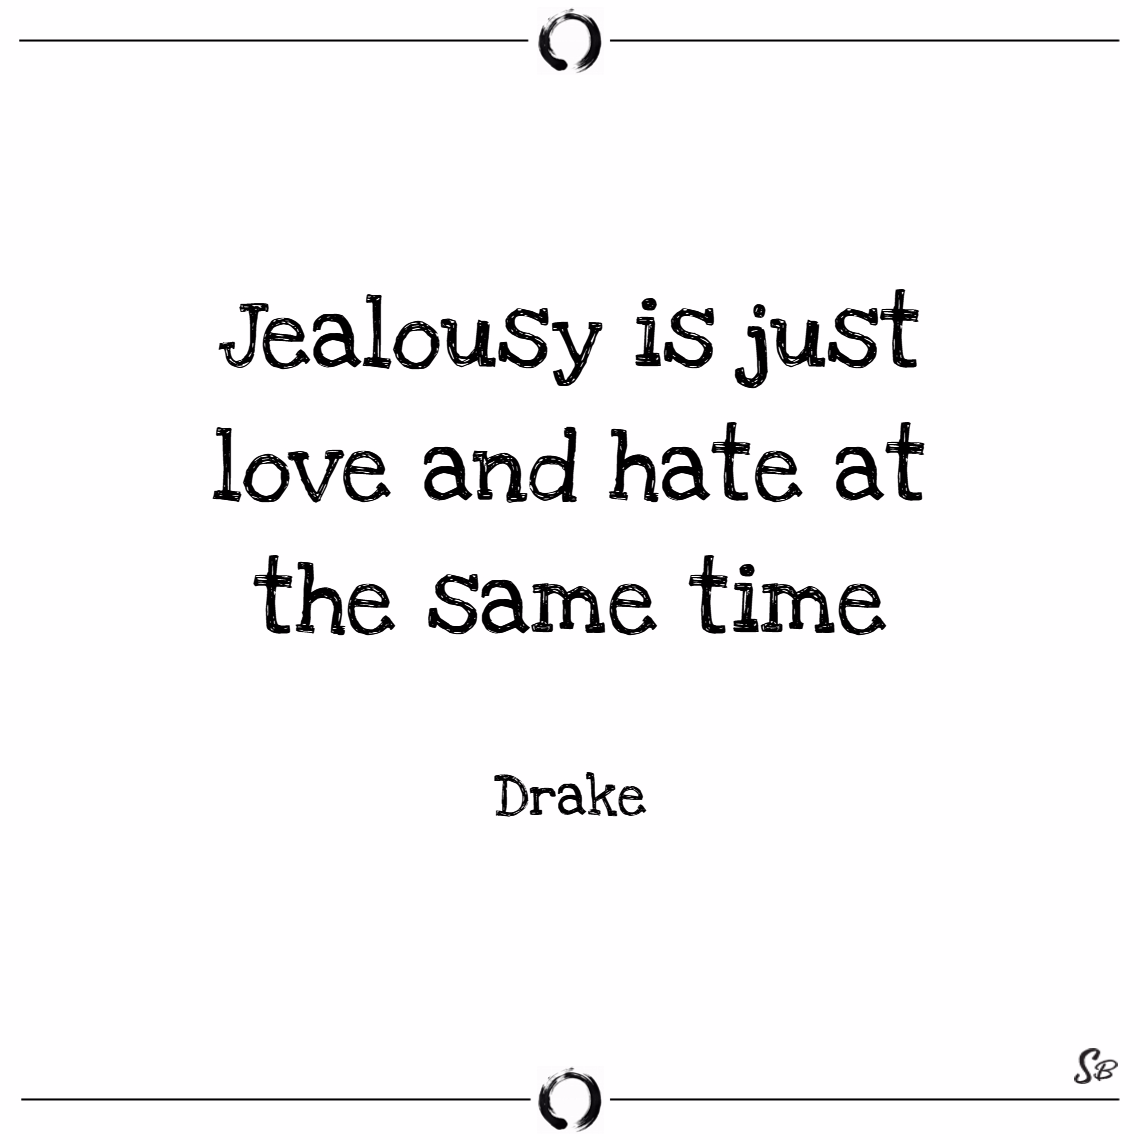 Jealousy is just love and hate at the same time. – drake